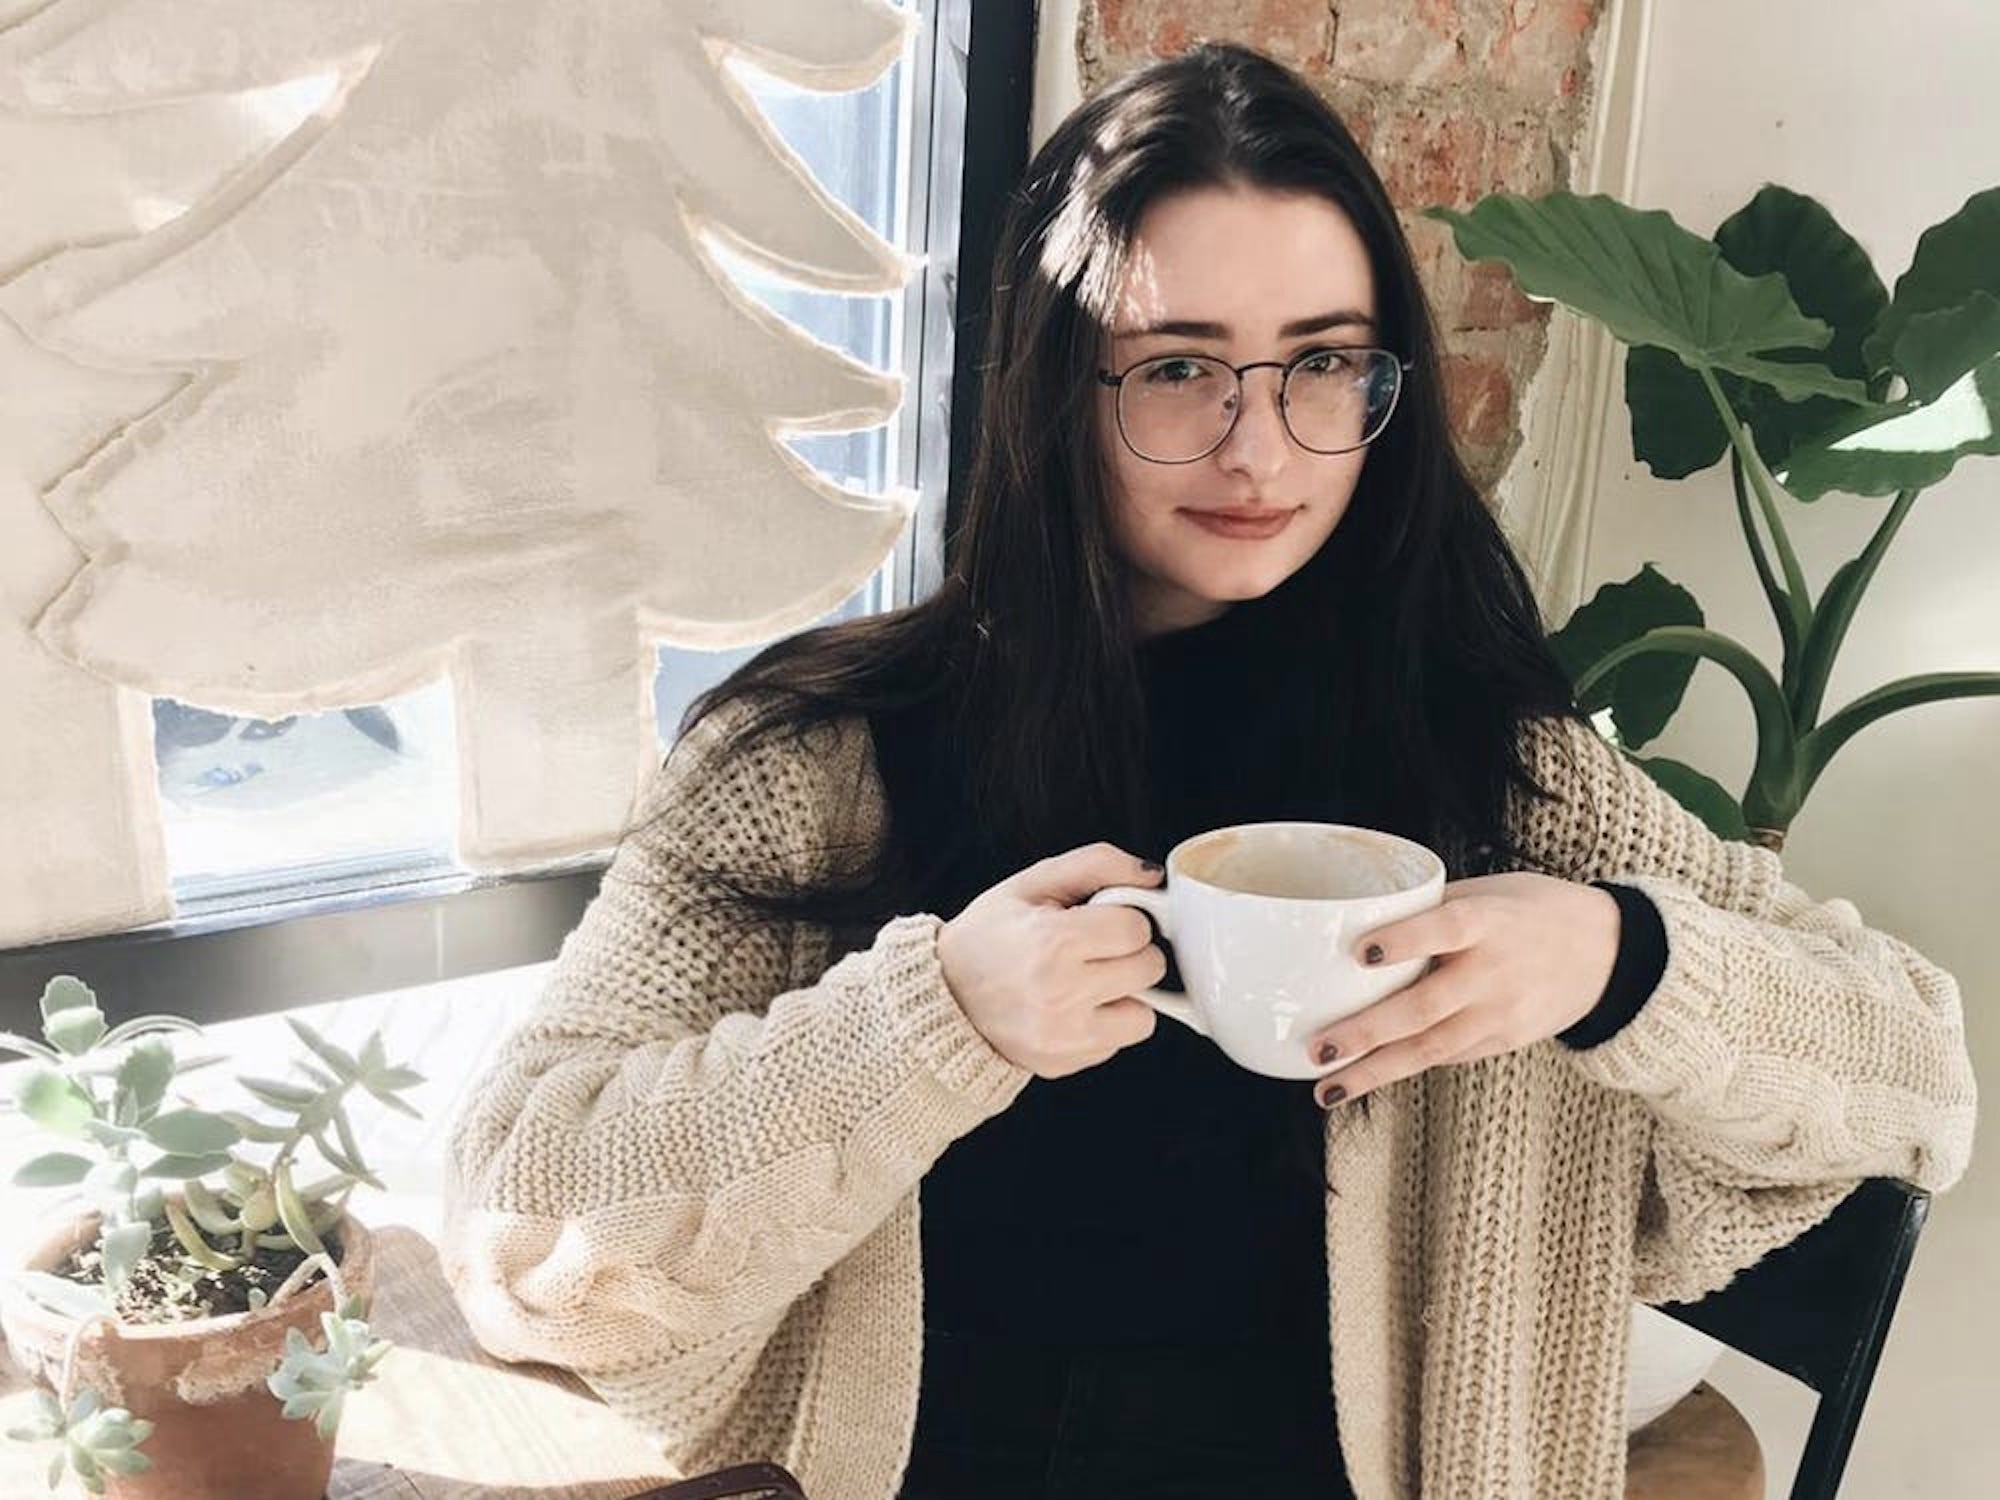 The author holding a cup of coffee.